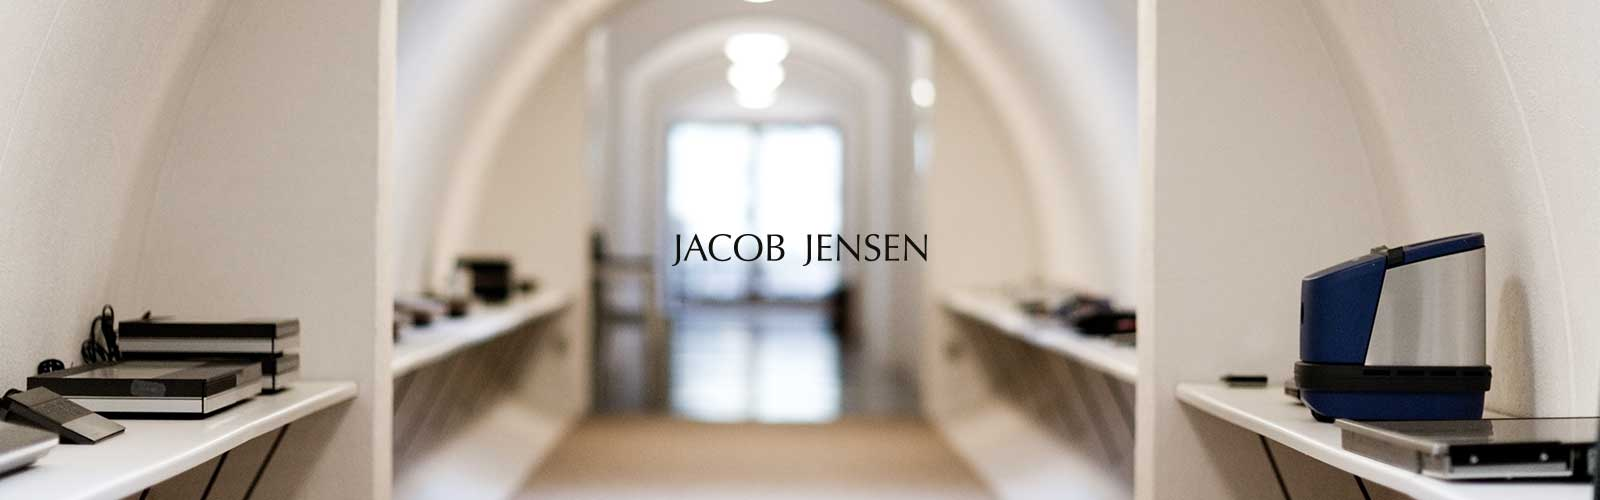 Banner Jacob Jensen